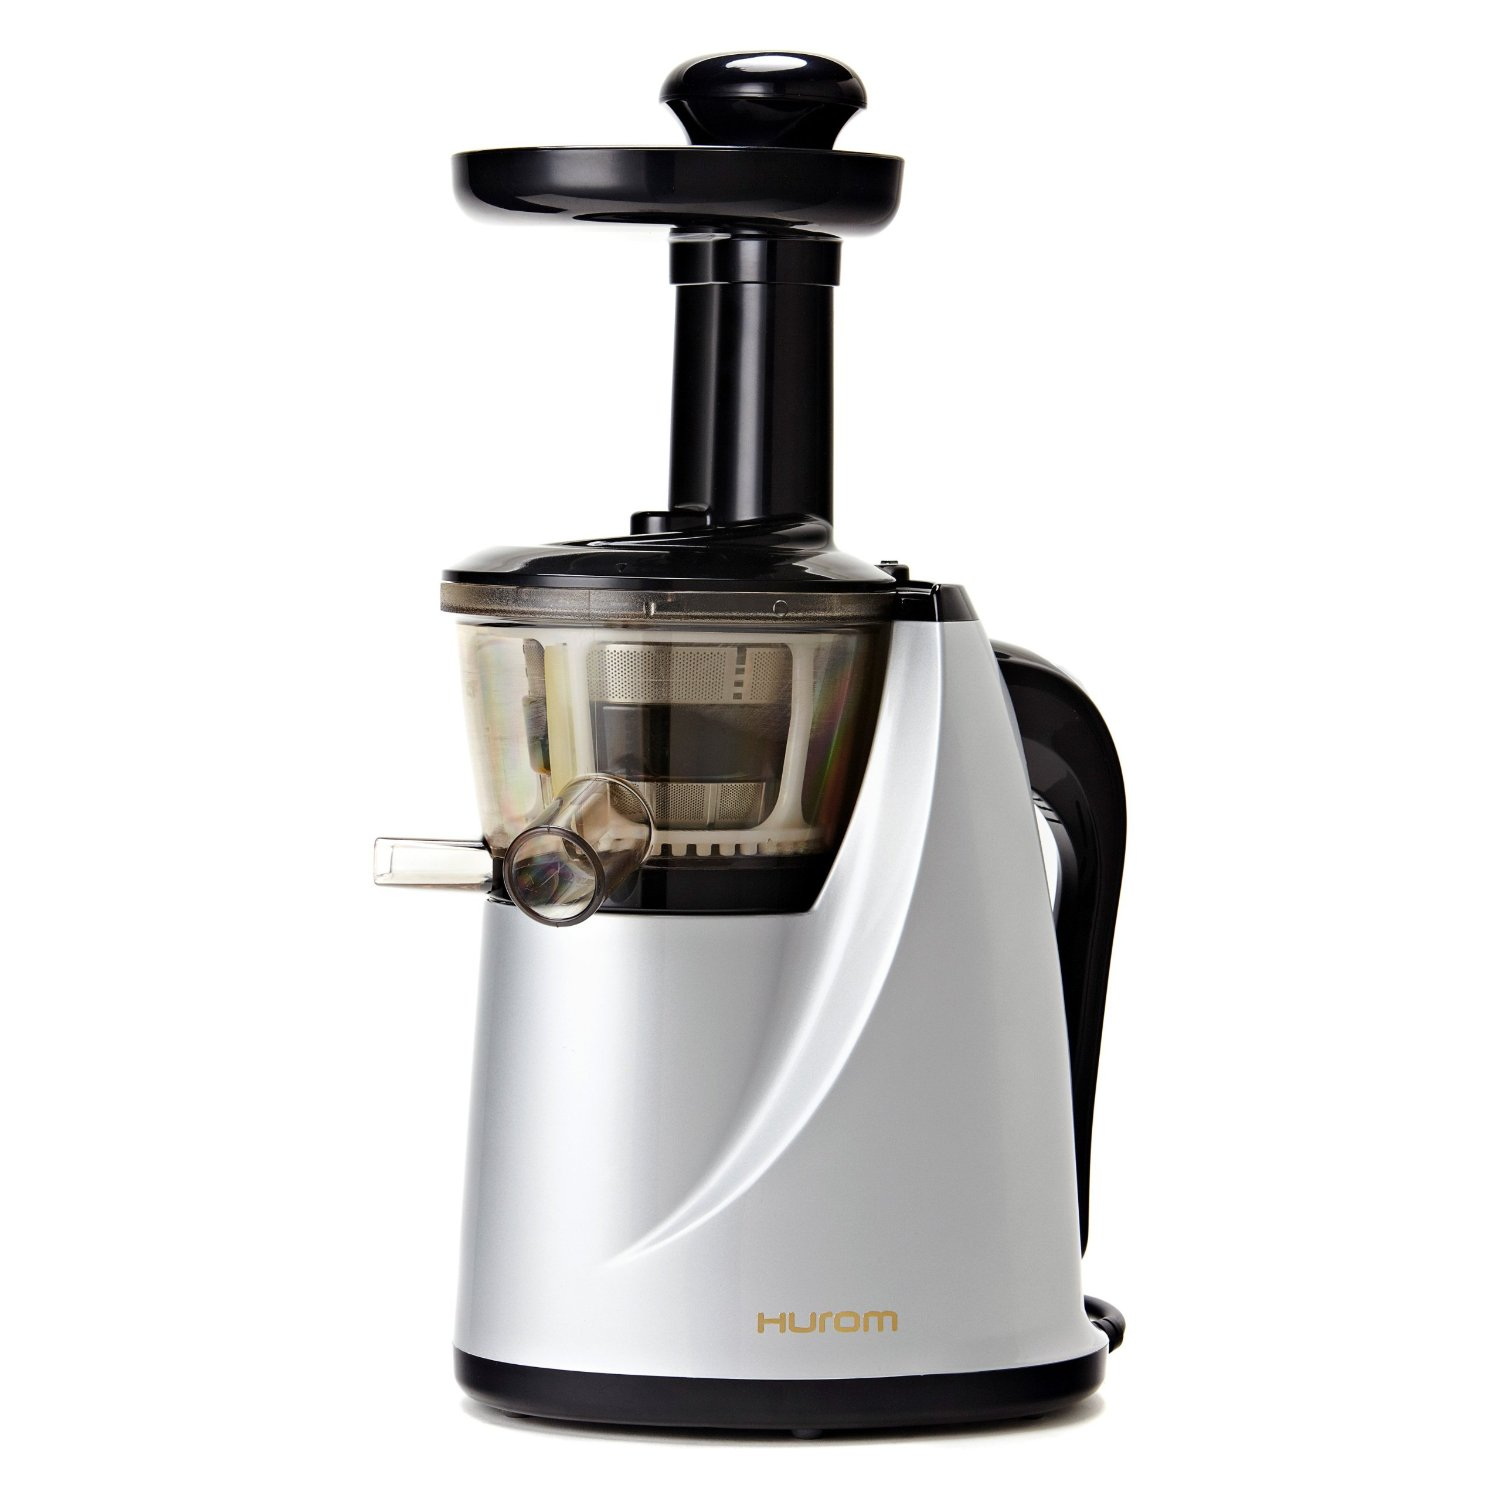 Sunmile Slow Juicer Review : Hurom HU-100 Masticating Slow Juicer Review - Best Cold Press Juicers